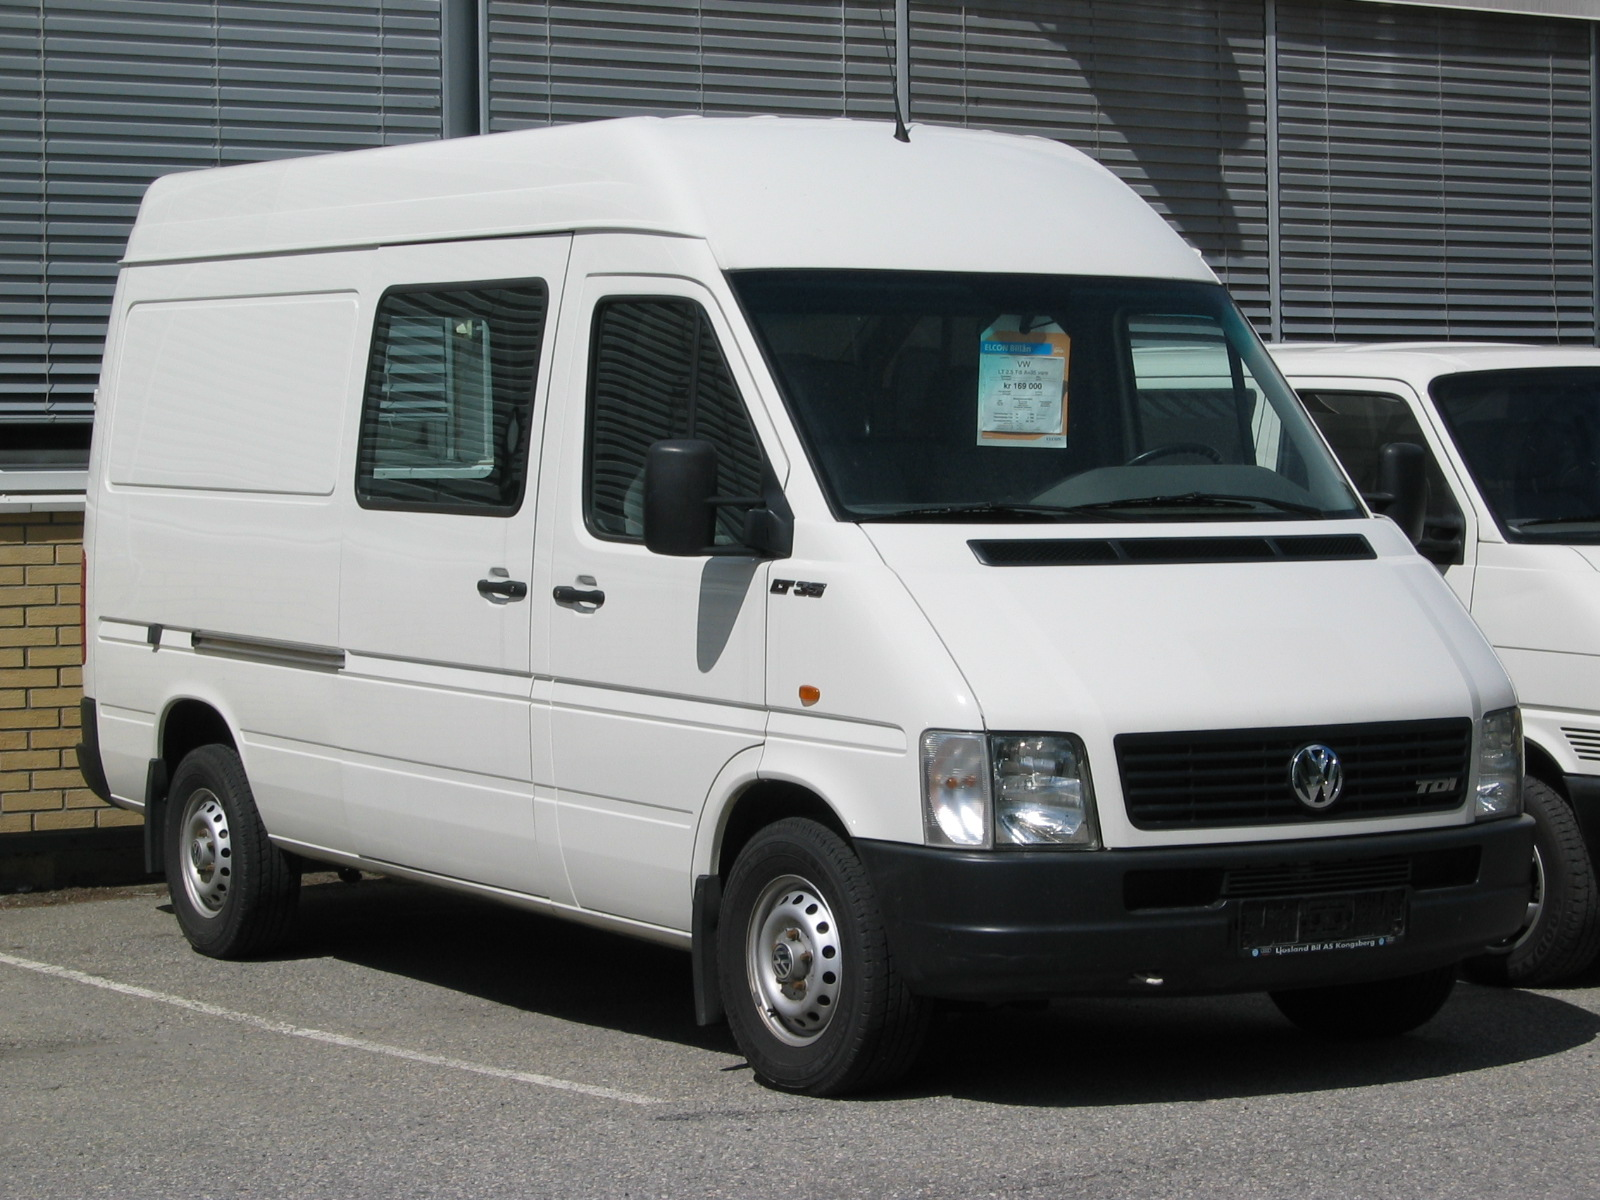 Volkswagen lt35d photo - 1